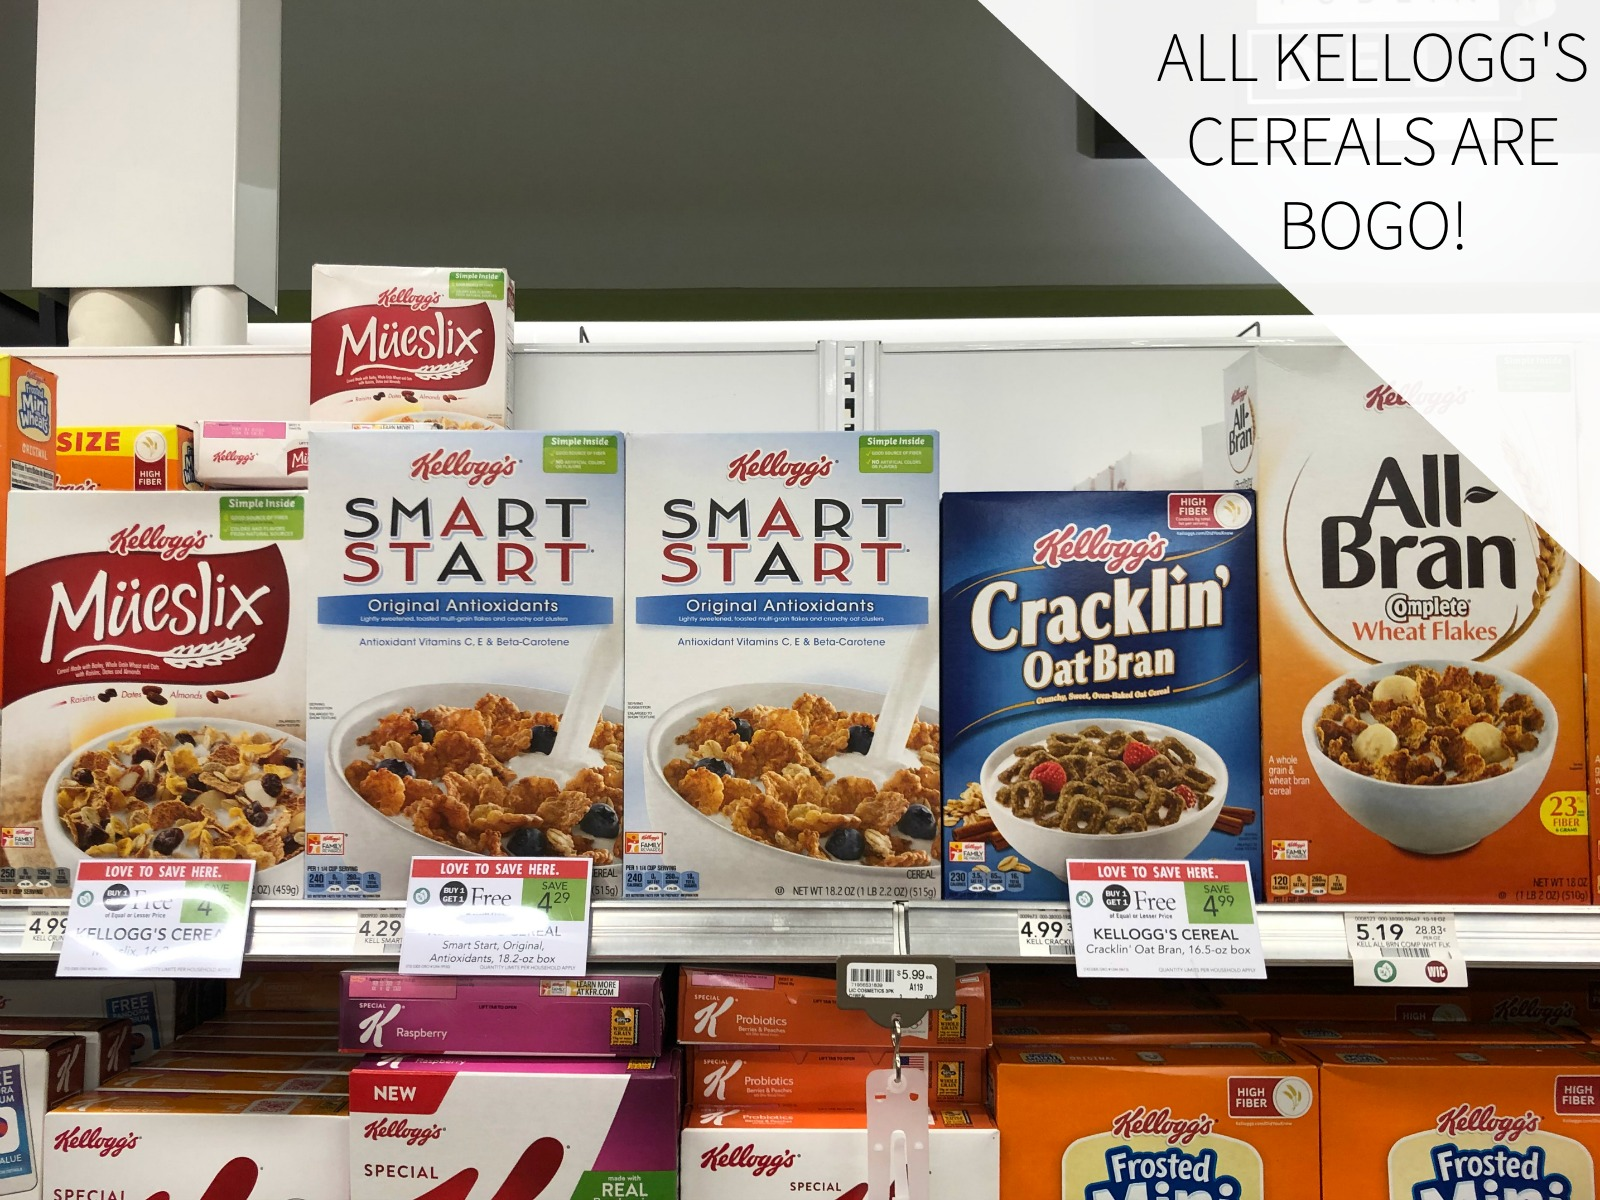 Every Single Kellogg's Cereal Is BOGO At Publix - Save On ALL Your Favorites! on I Heart Publix